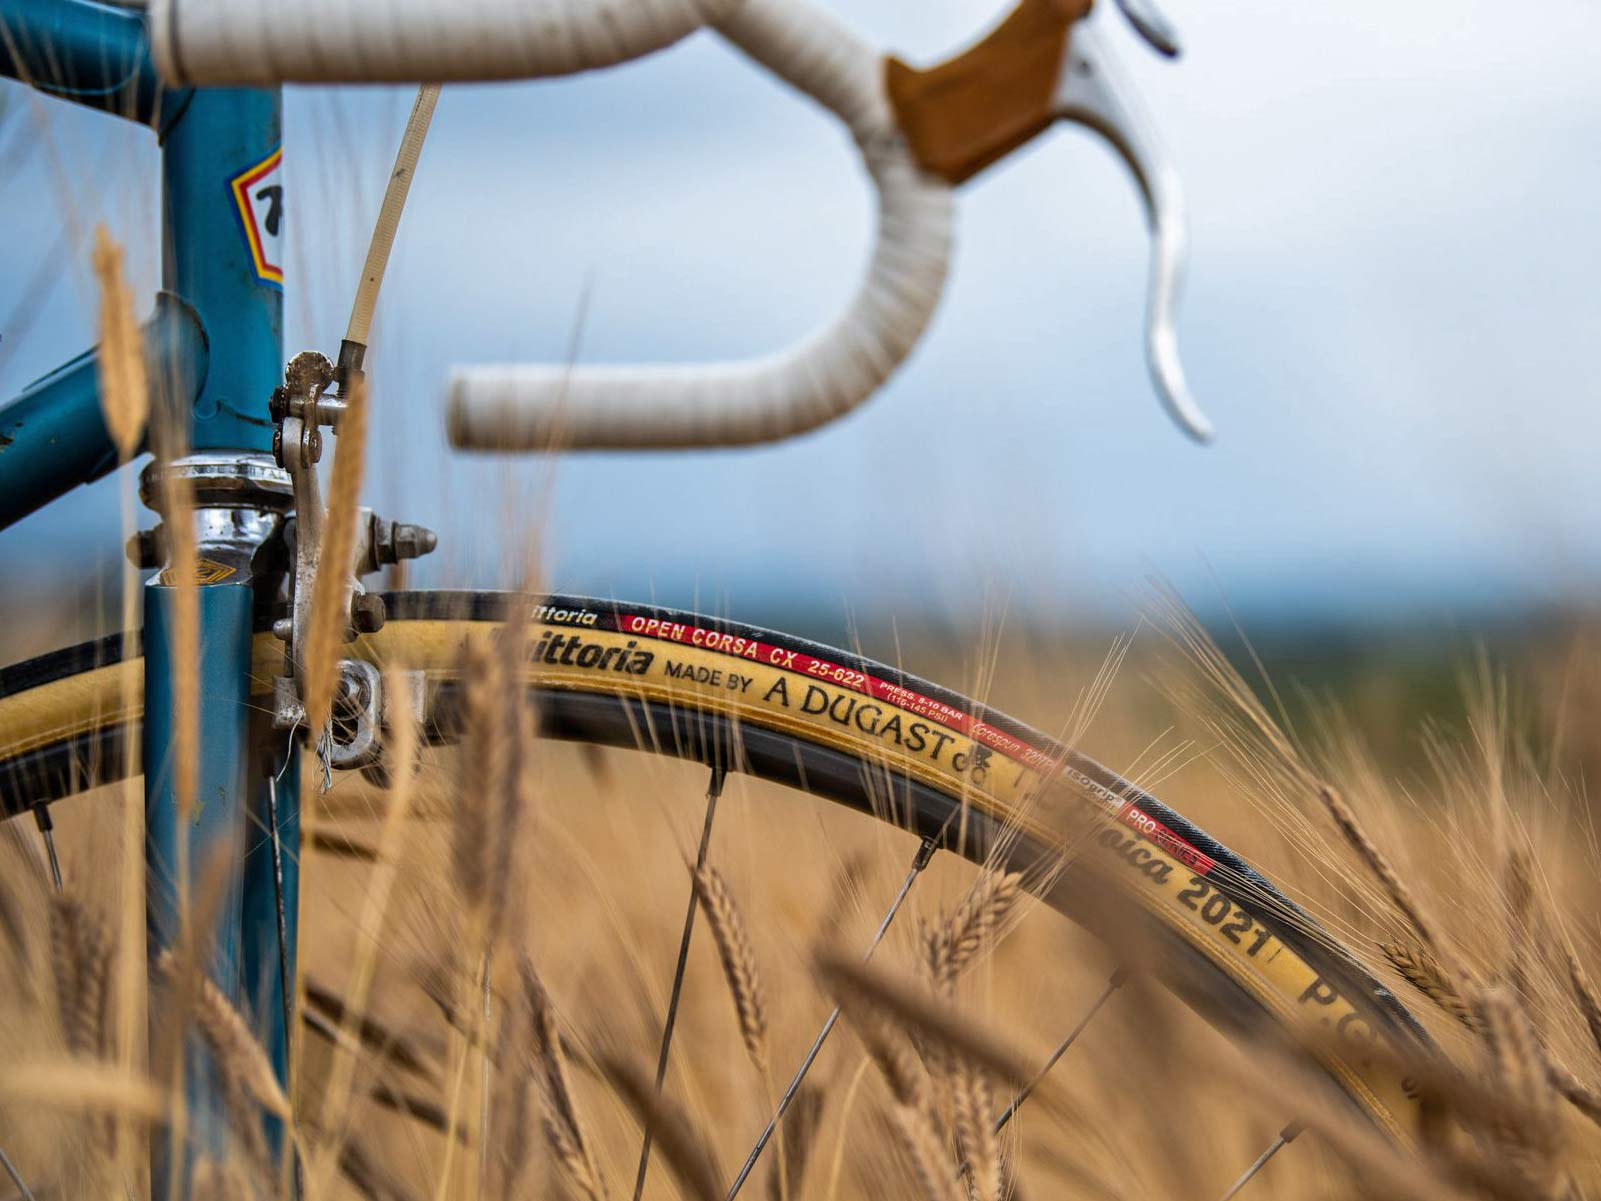 Vittoria made by A Dugast L Eroica limited edition 25mm retro vintage tubular road bike tires,field